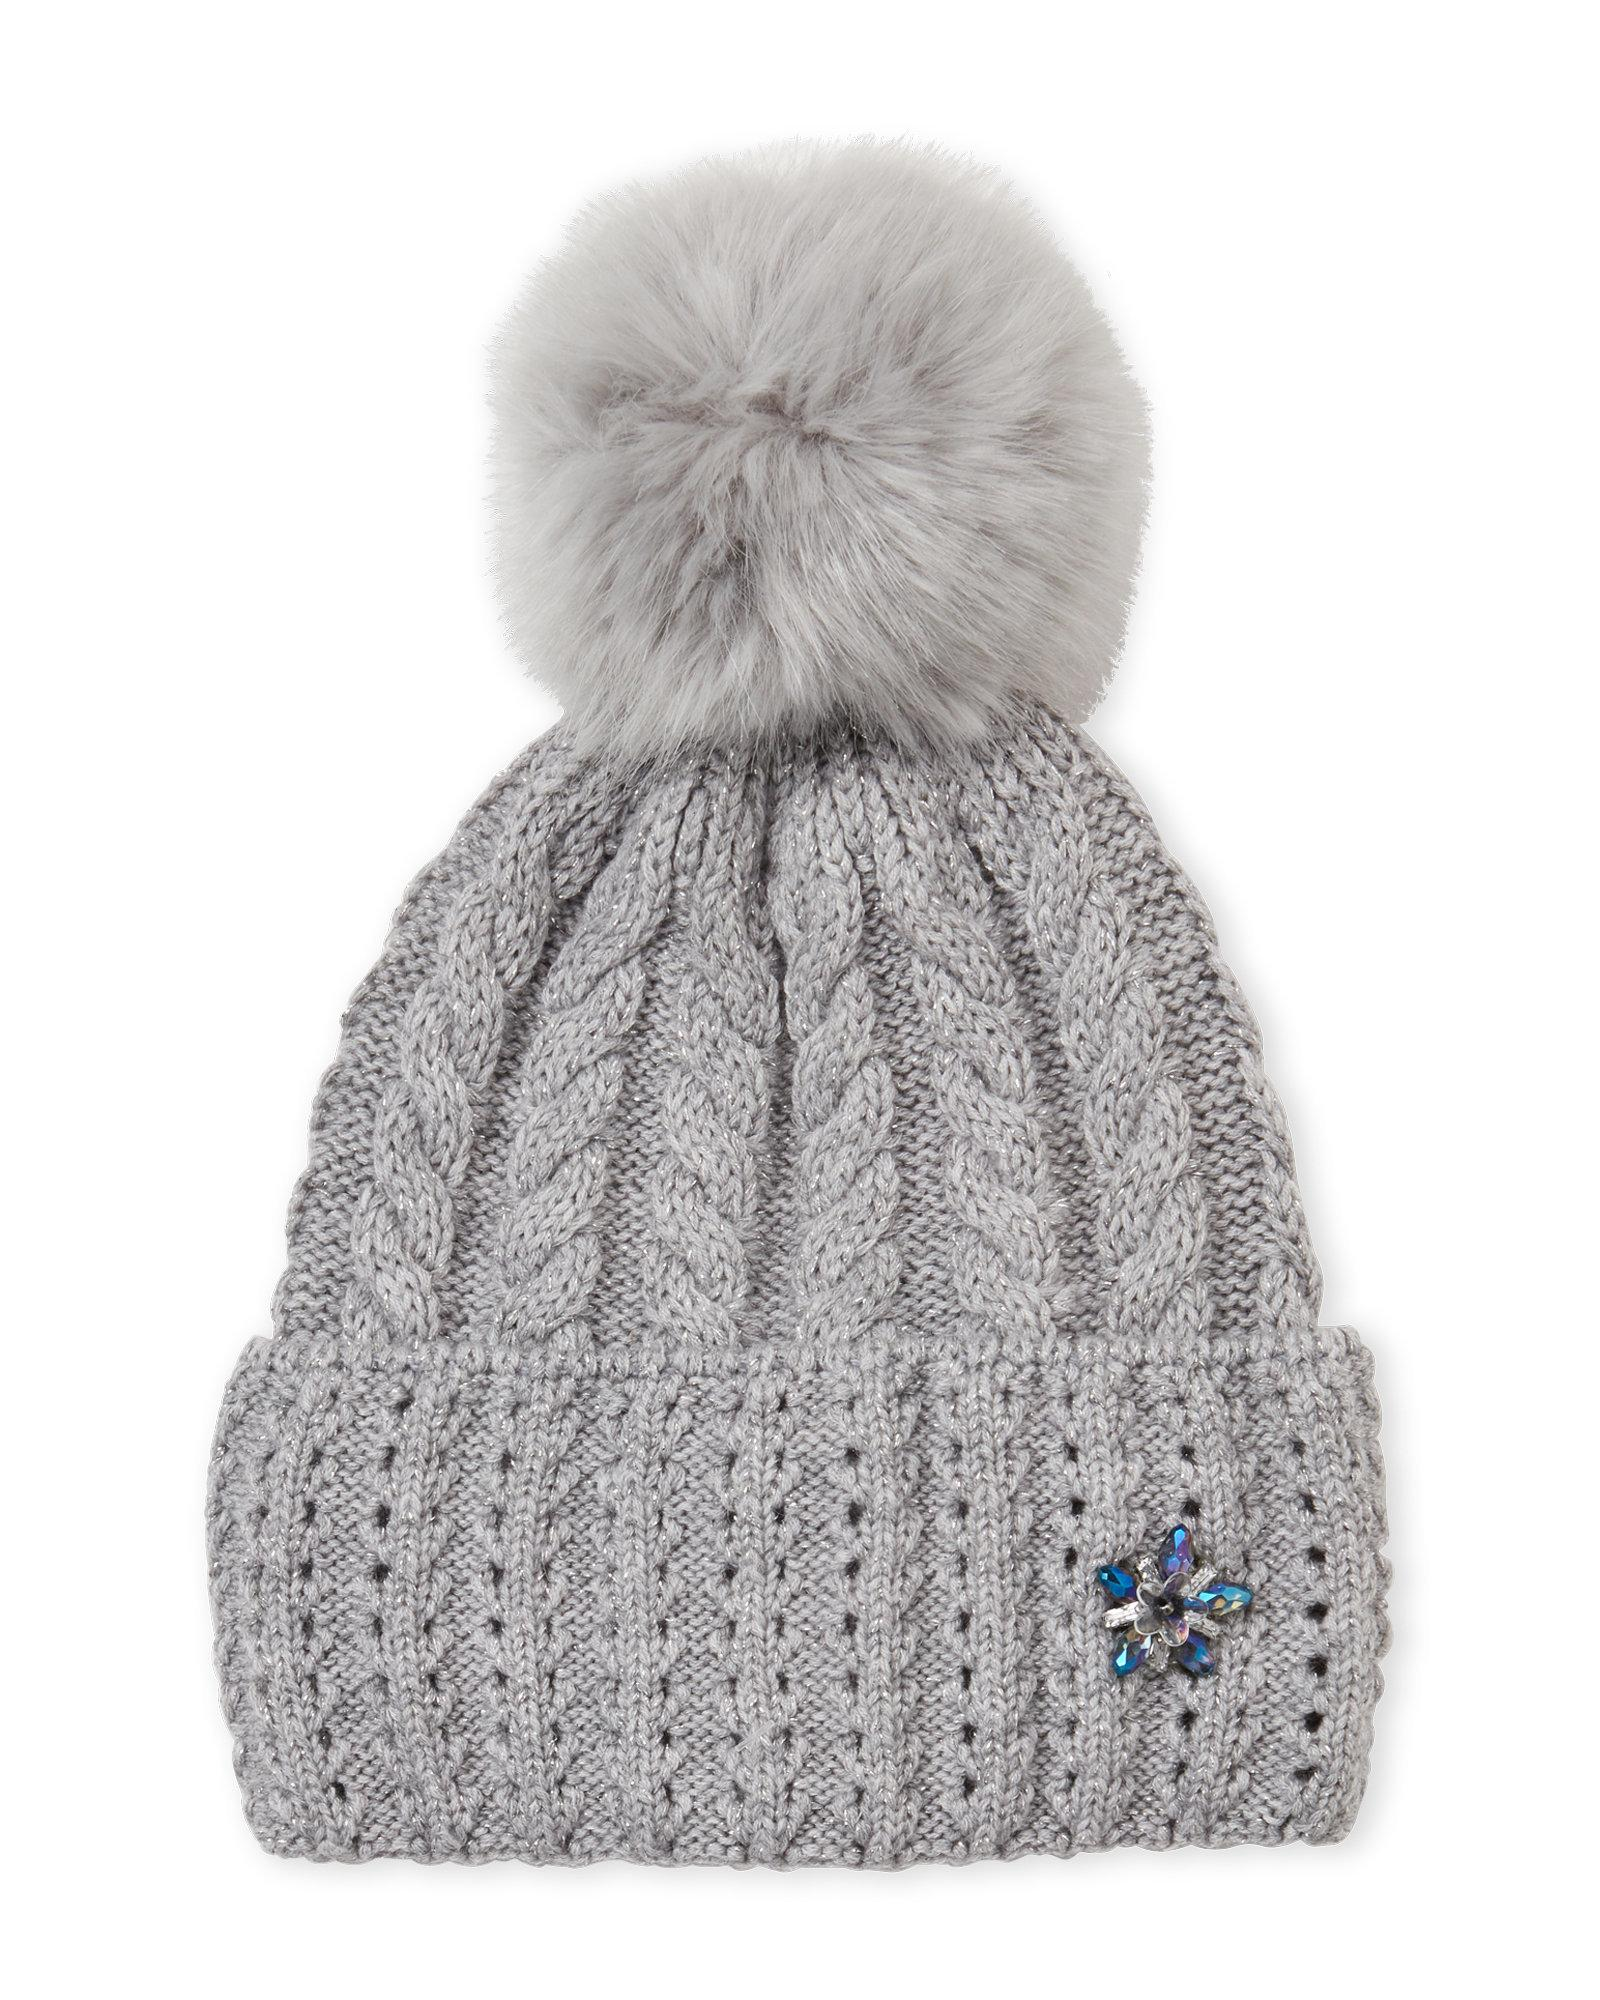 d26358372e8169 Lyst - Badgley Mischka Cable Knit Pom-pom Beanie in Gray